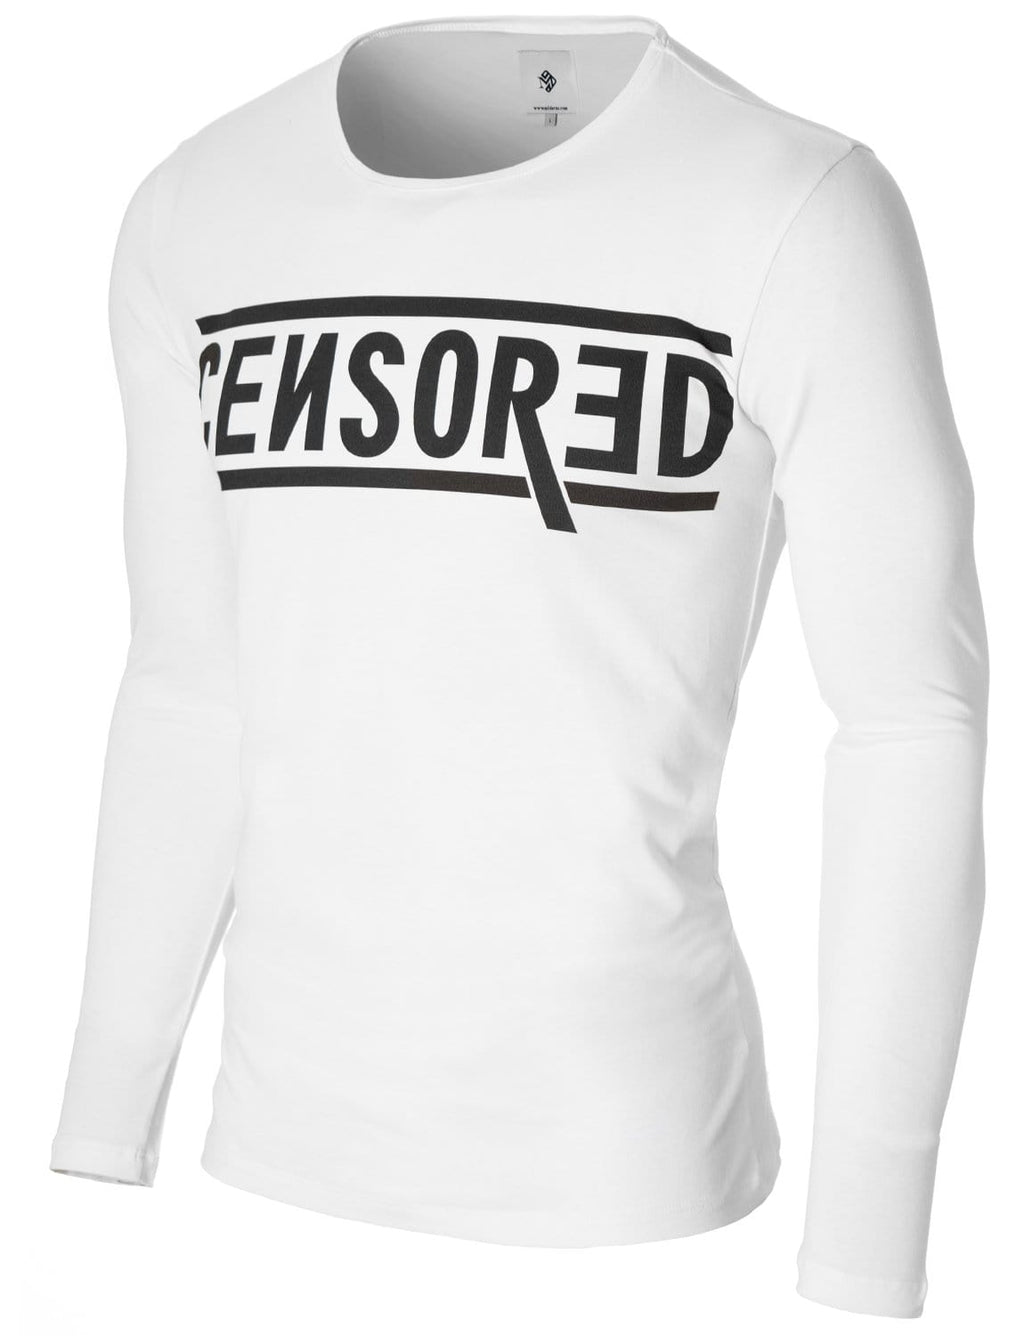 Mens Long Sleeve Censored Print T-shirt White